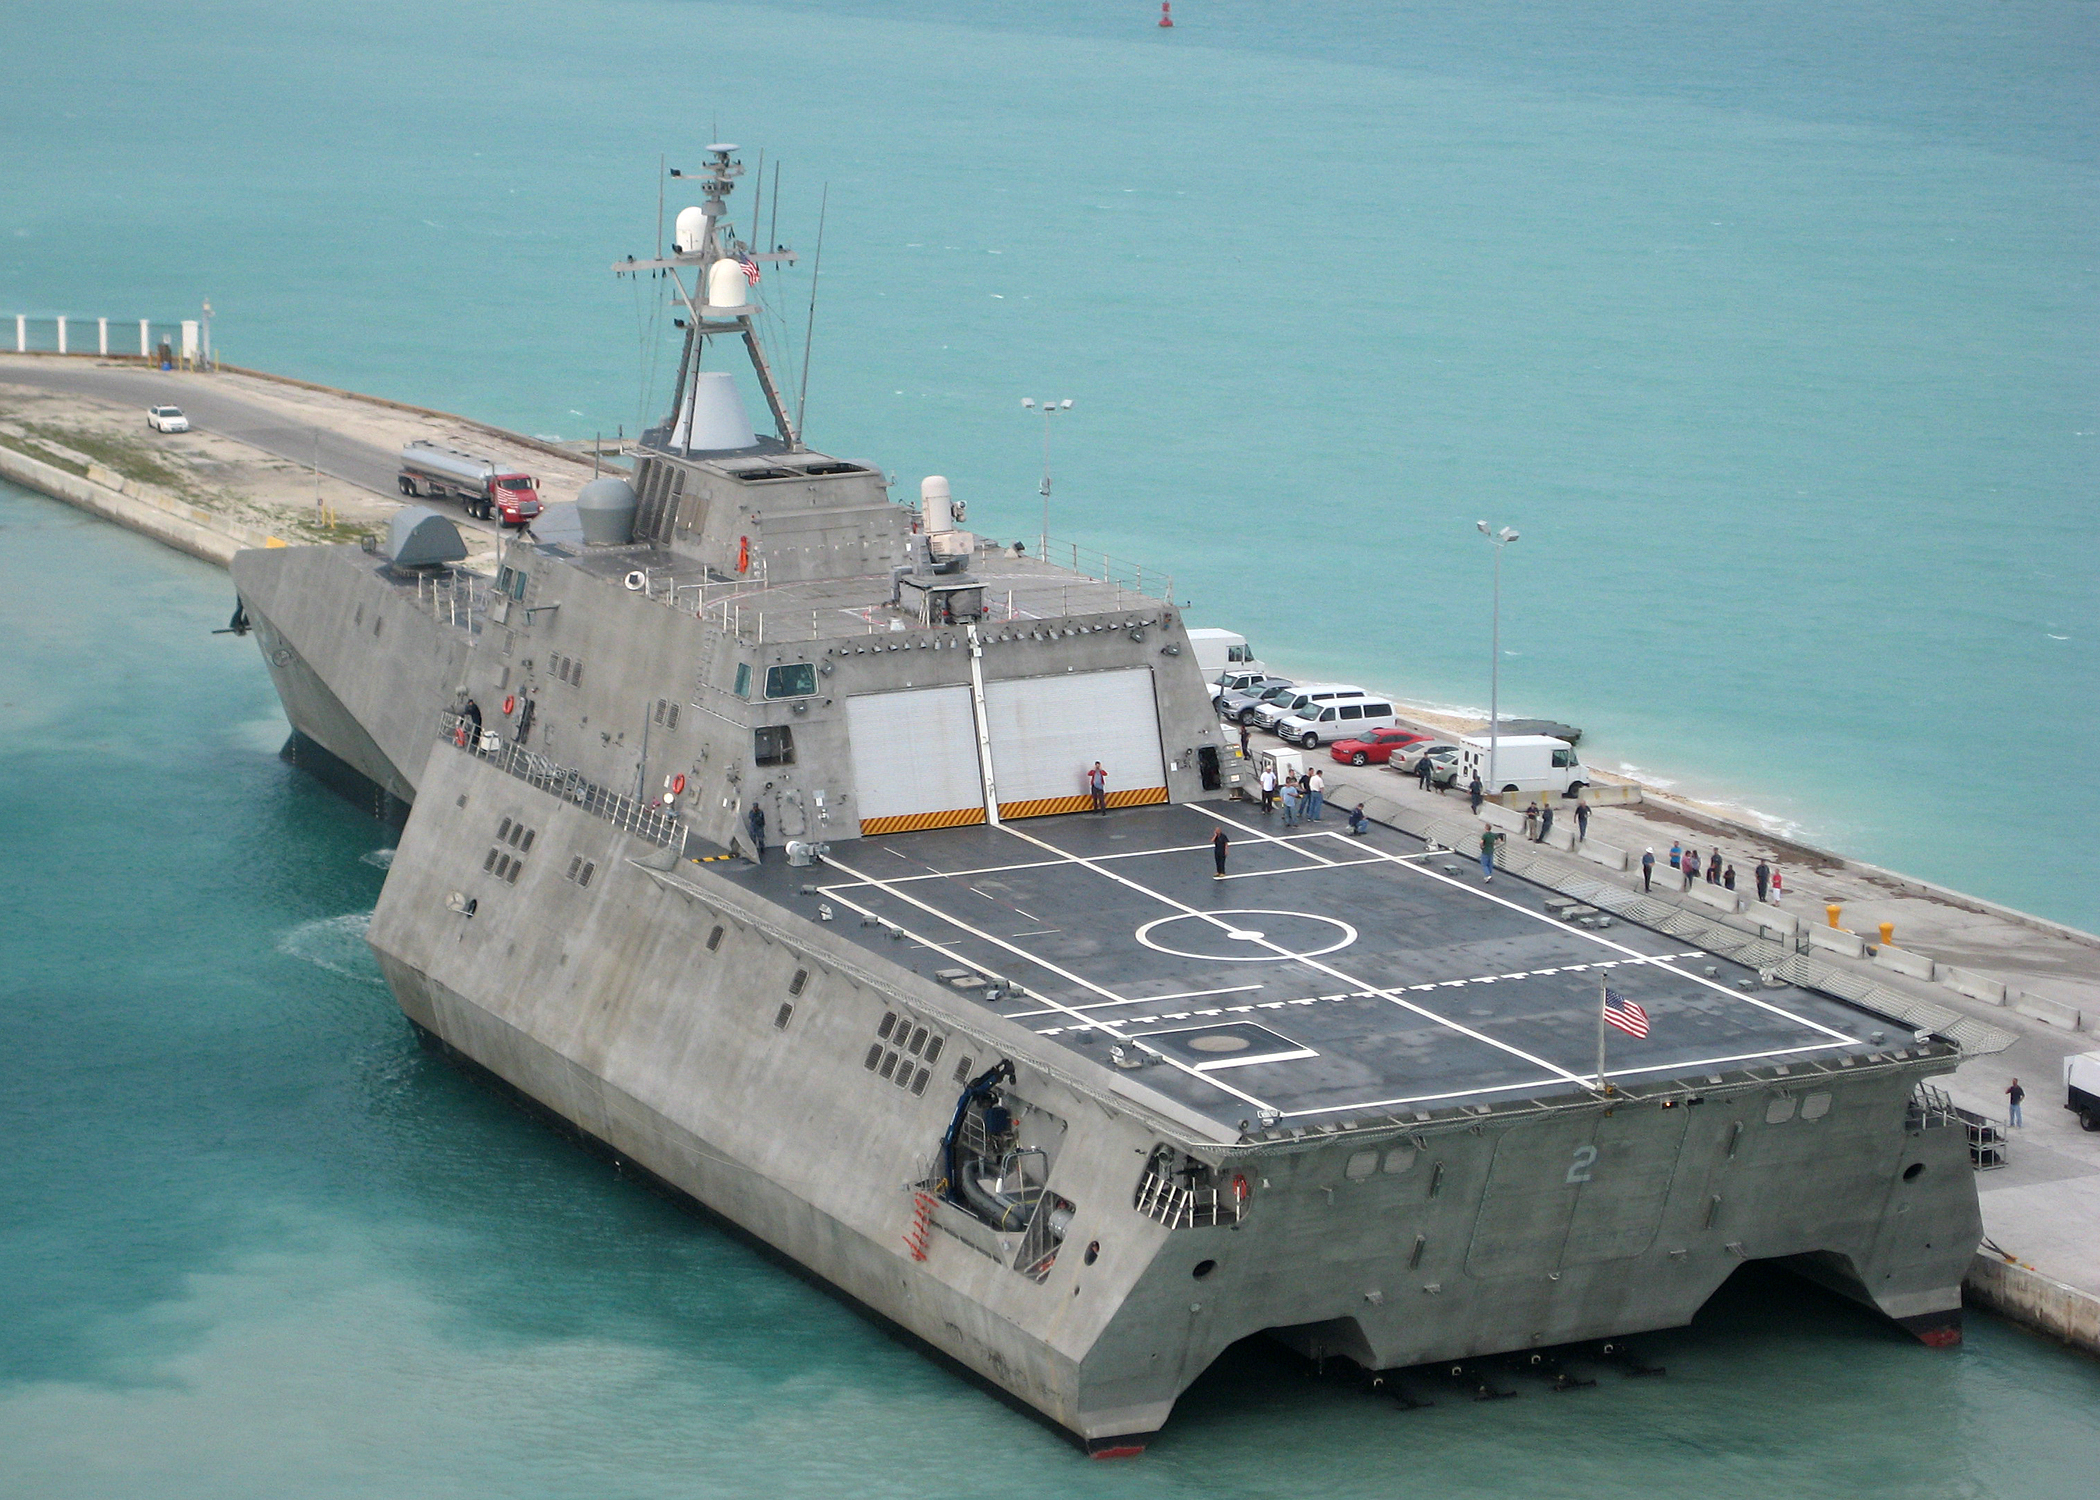 US_Navy_100329-N-1481K-293_USS_Independence_%28LCS_2%29_arrives_at_Mole_Pier_at_Naval_Air_Station_Key_West.jpg